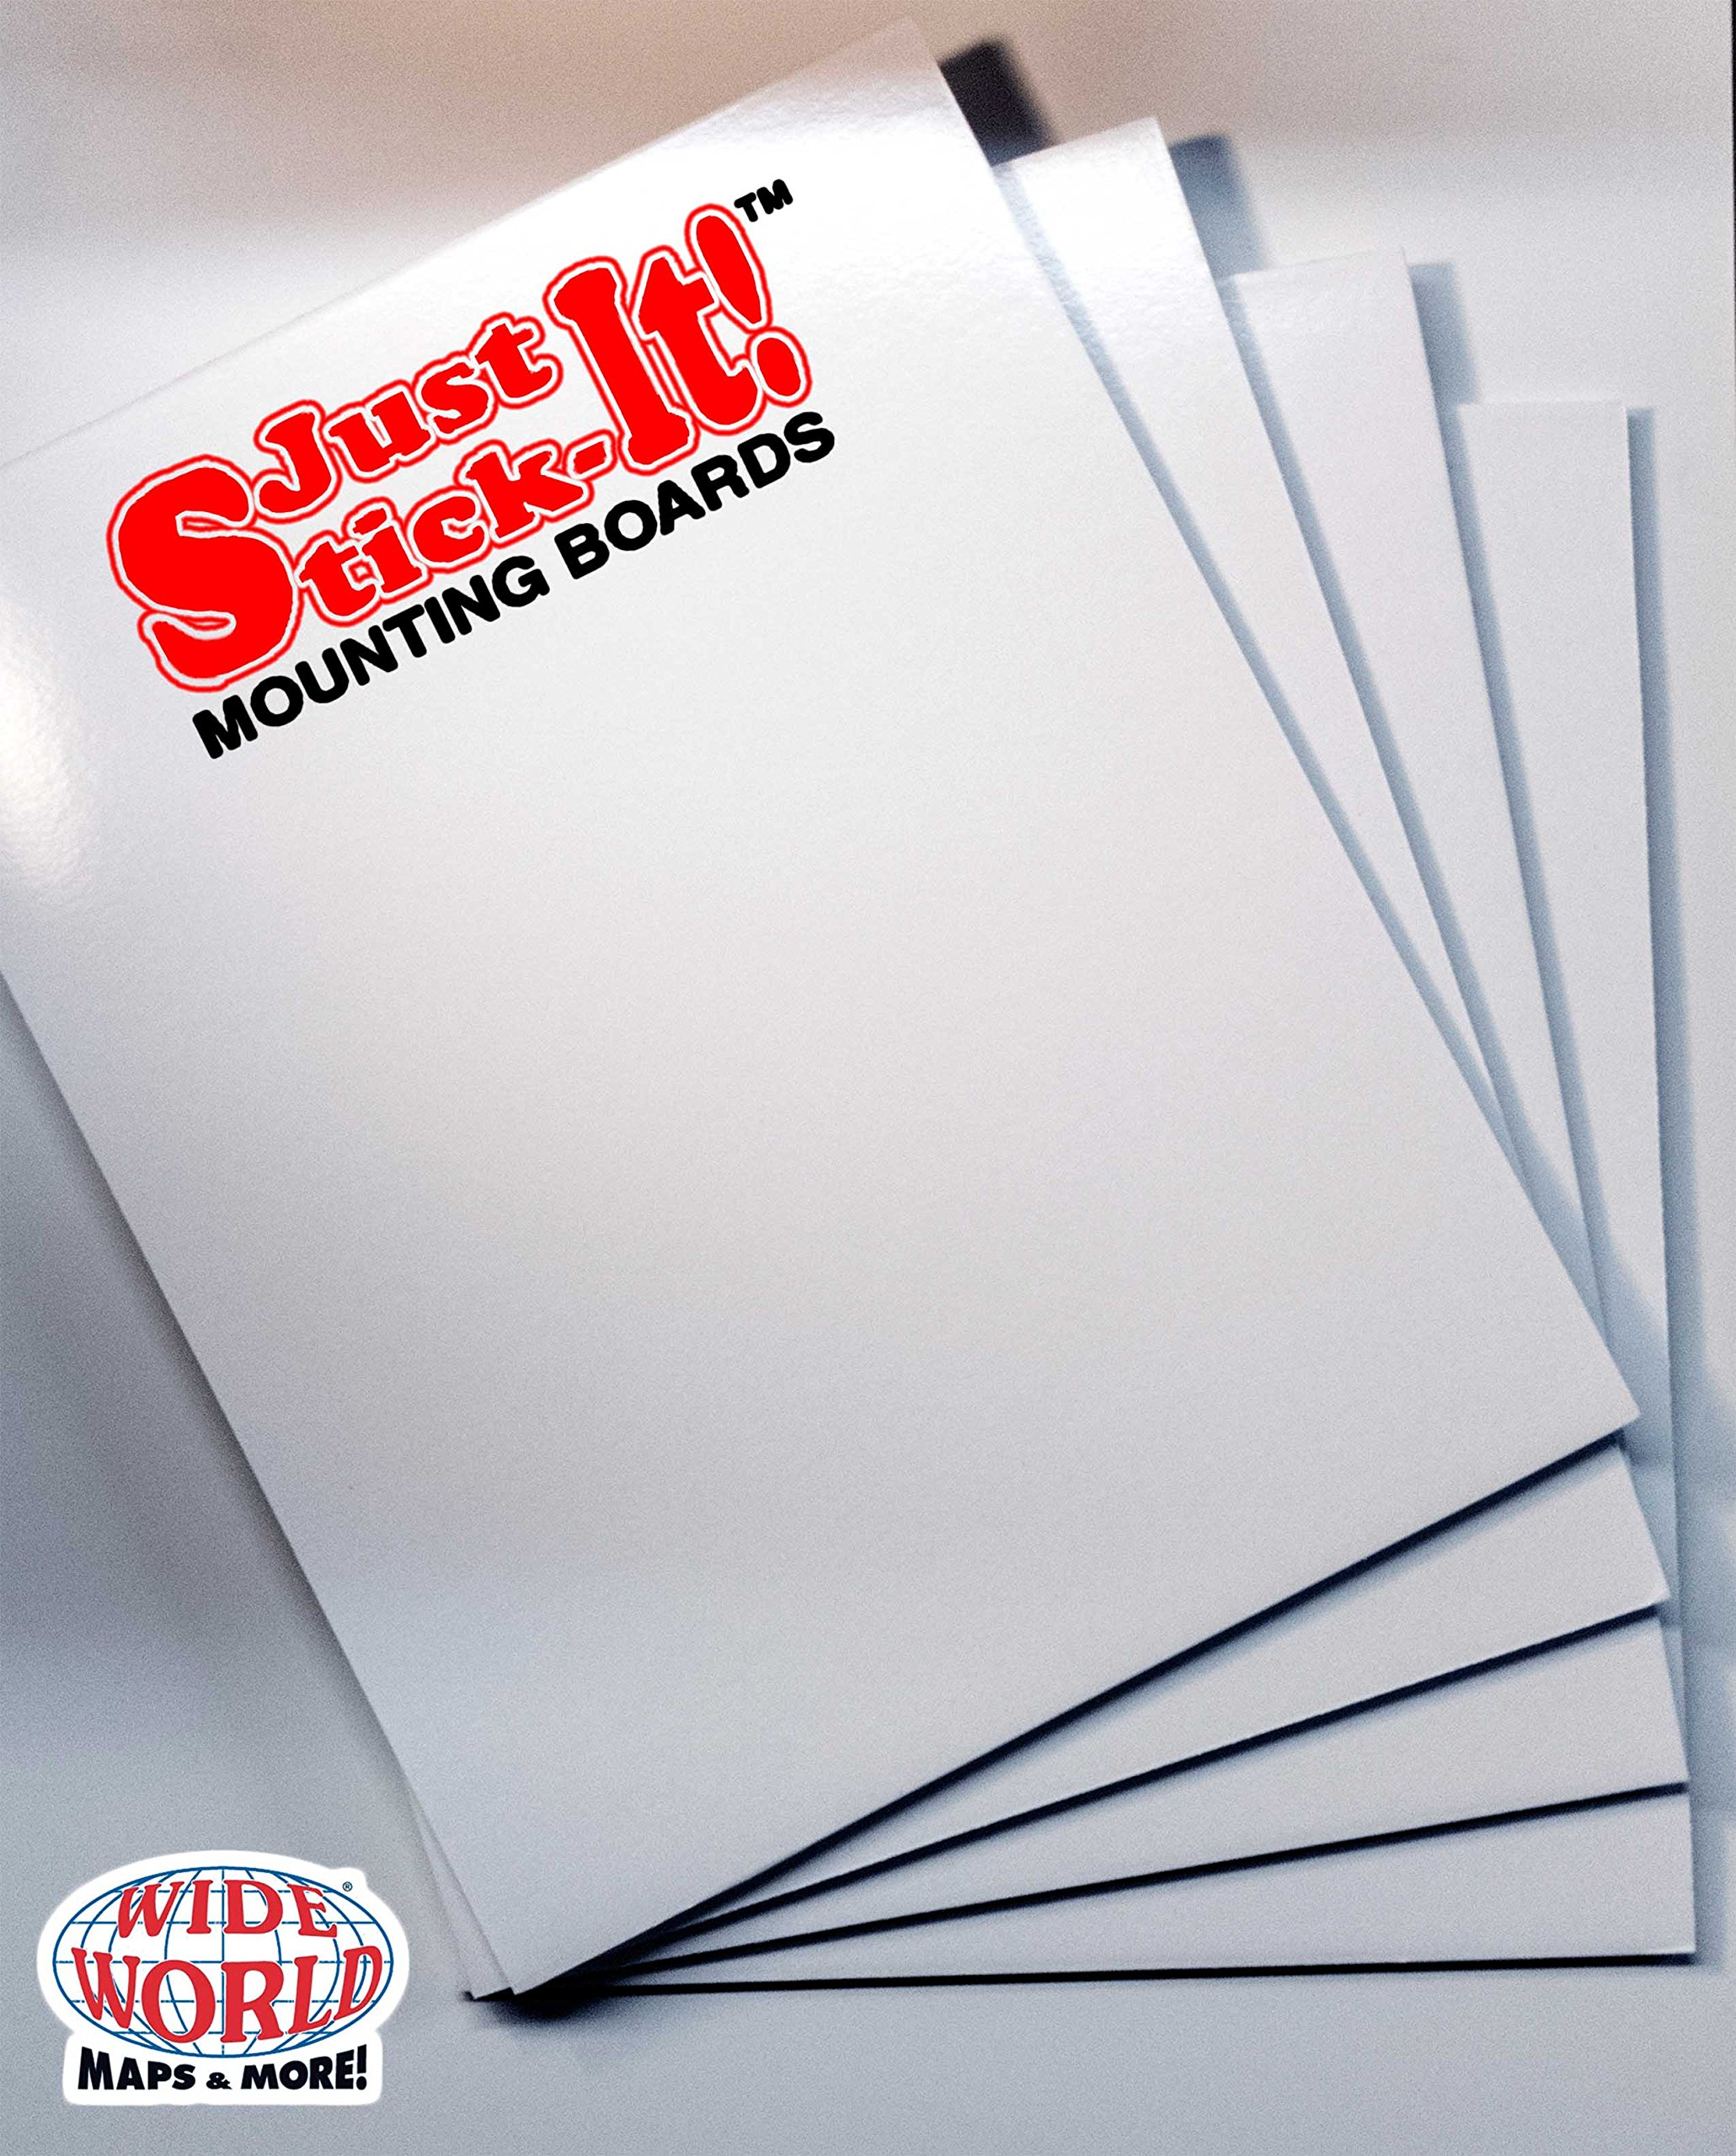 Just Stick-It! Mounting Boards: 8½'' × 11'' Four Piece Set by d'SHOP @ Wide World Maps & MORE!